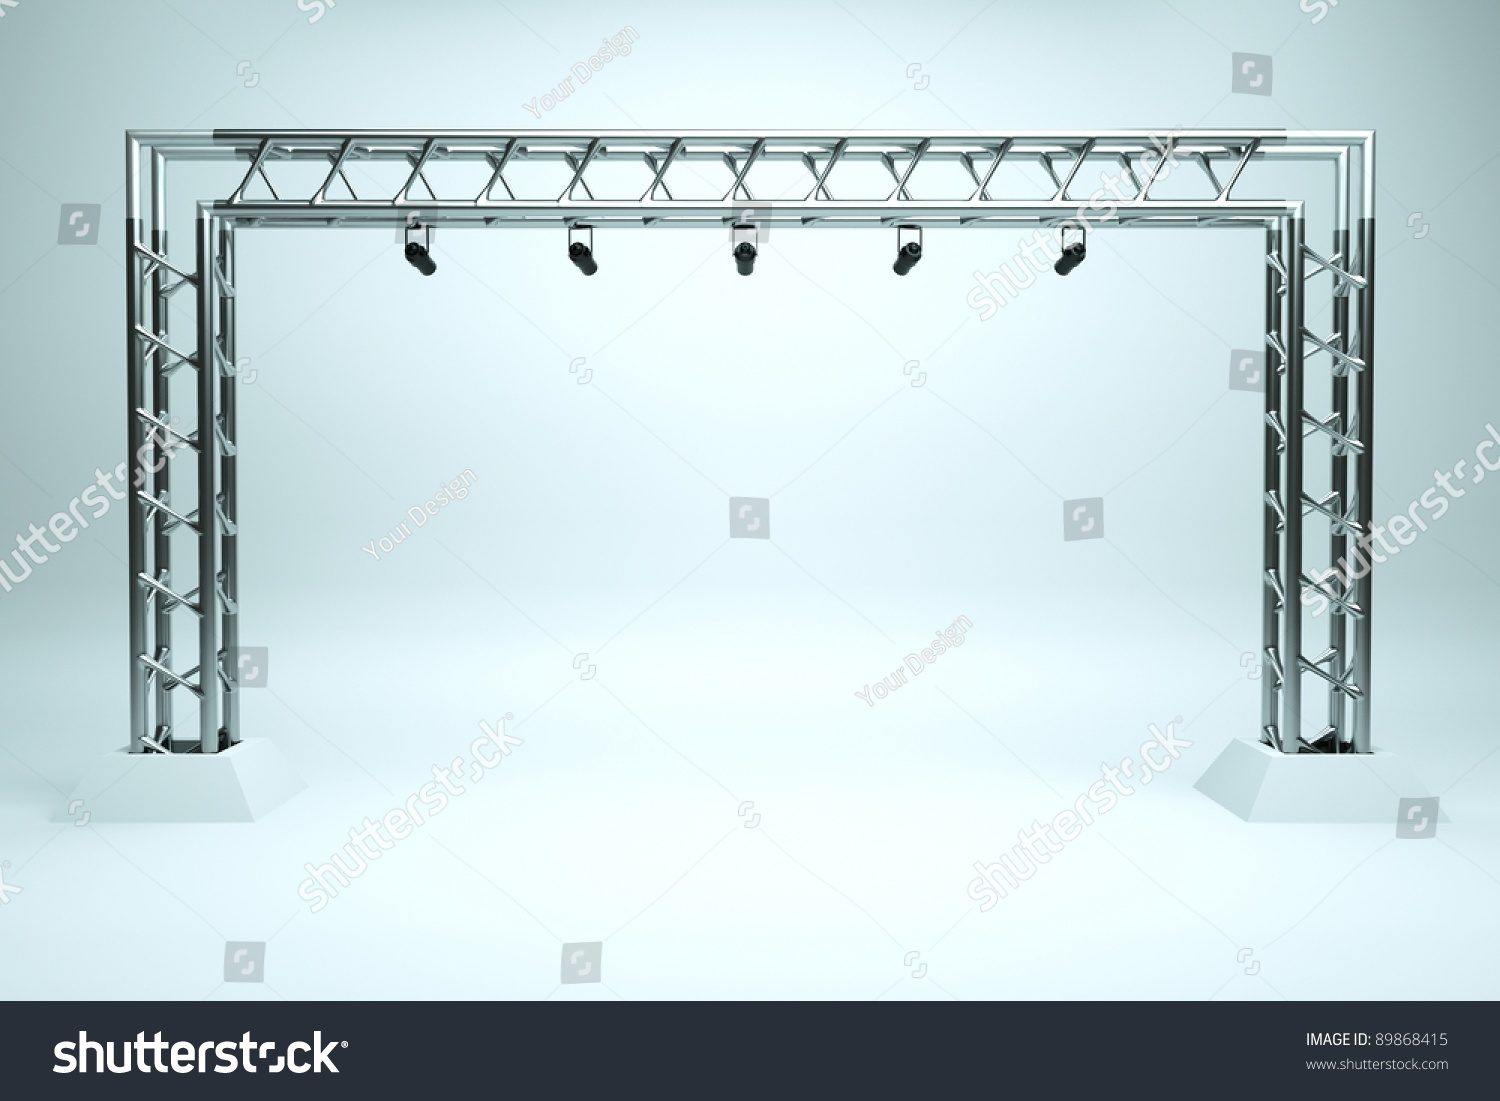 Concert Stage Metal Frame Stock Illustration 89868415 - Shutterstock